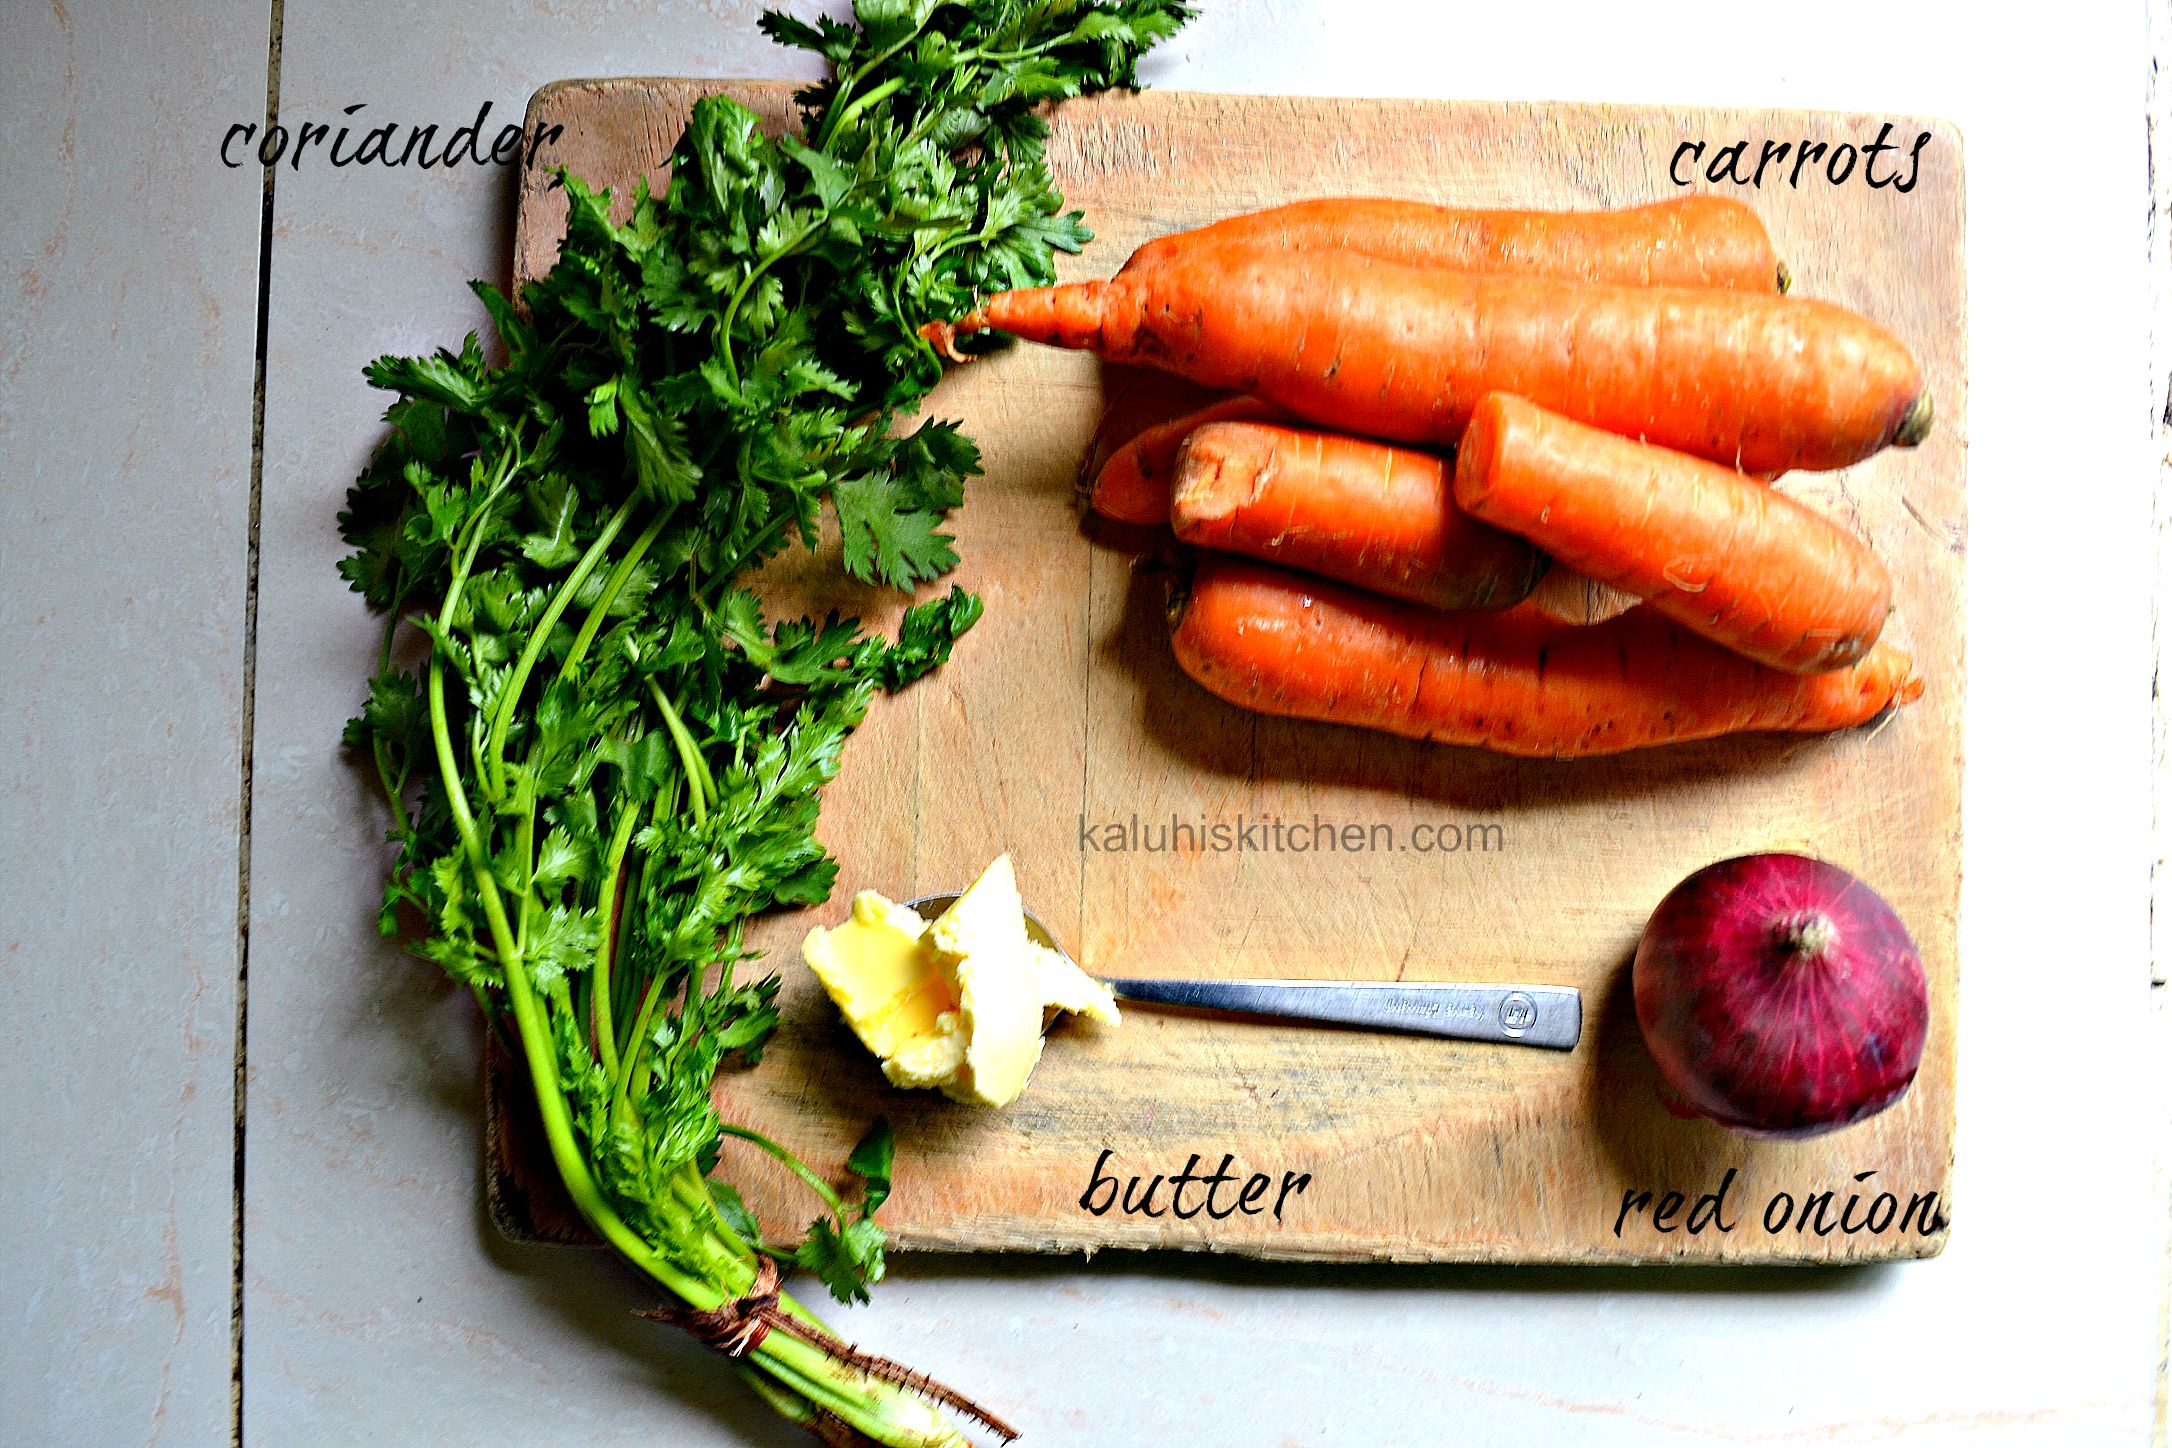 ingredients for buttered carrots_kaluhiskitchen.con_carrot recipes